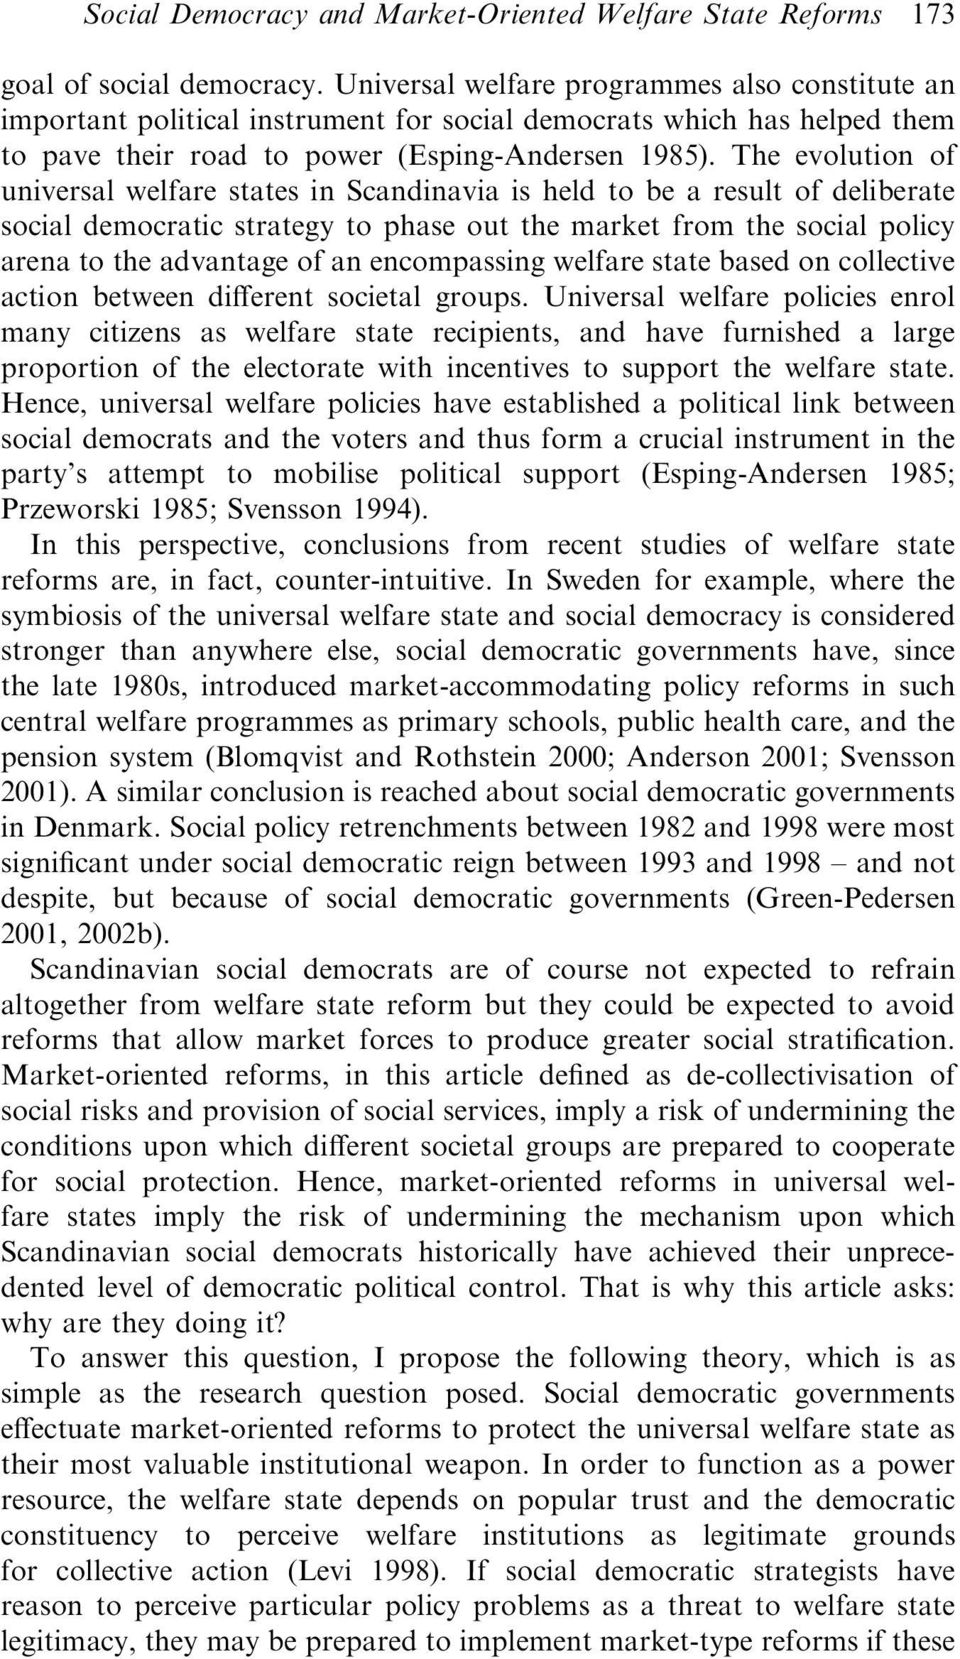 The evolution of universal welfare states in Scandinavia is held to be a result of deliberate social democratic strategy to phase out the market from the social policy arena to the advantage of an